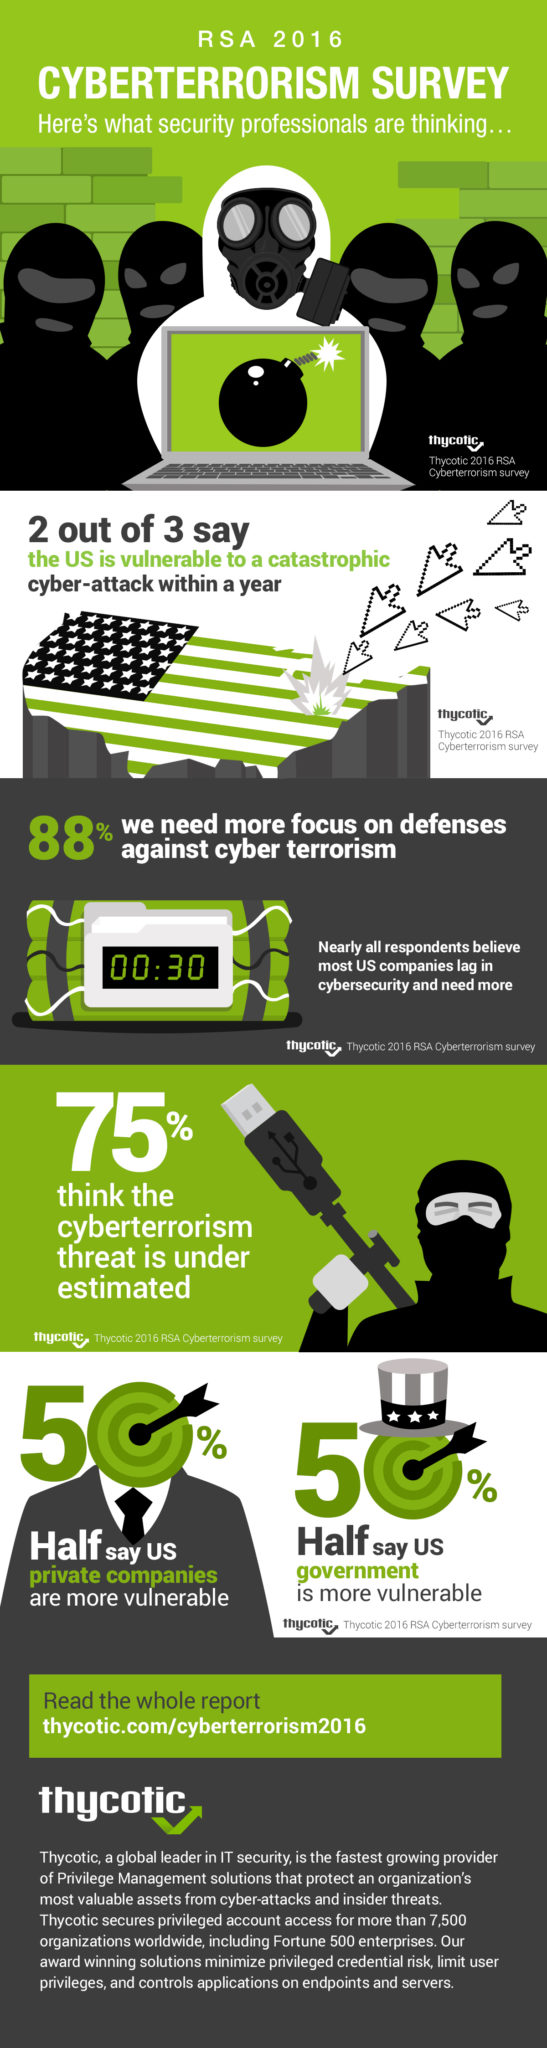 Cyber Terrorism Infographic for RSA Cyber Terrorism Survey 2016